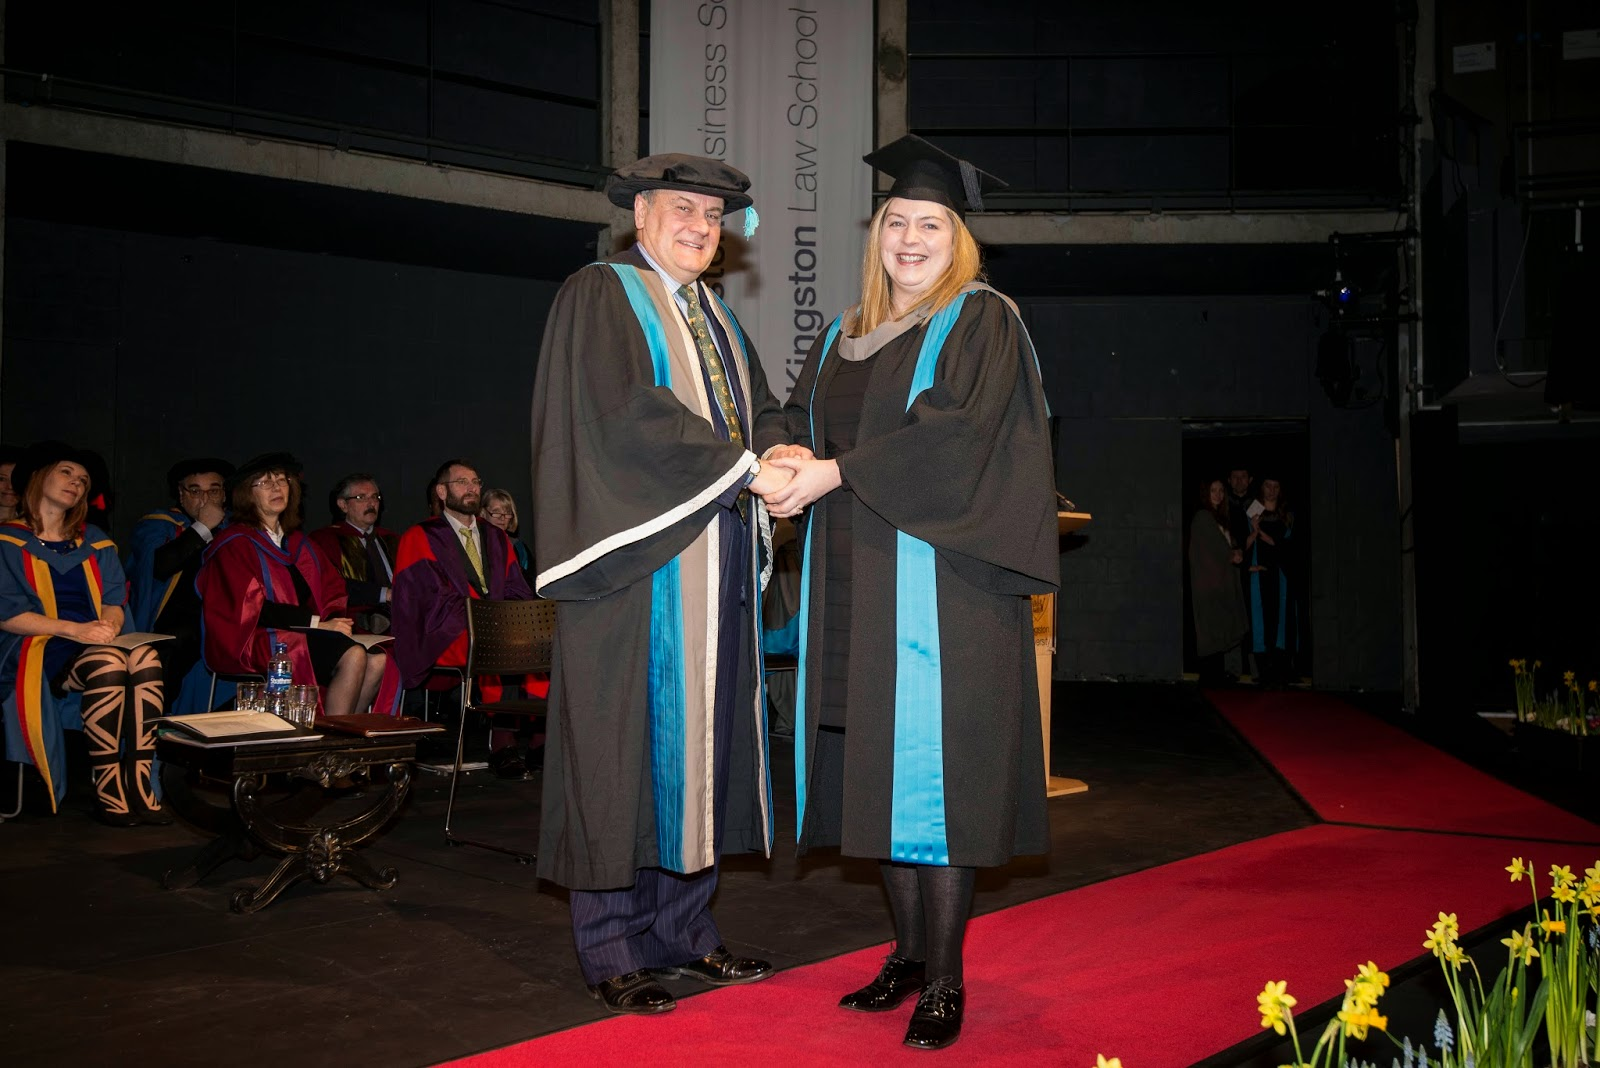 Ruth Findlay, Masters in Internal Communication Management graduate